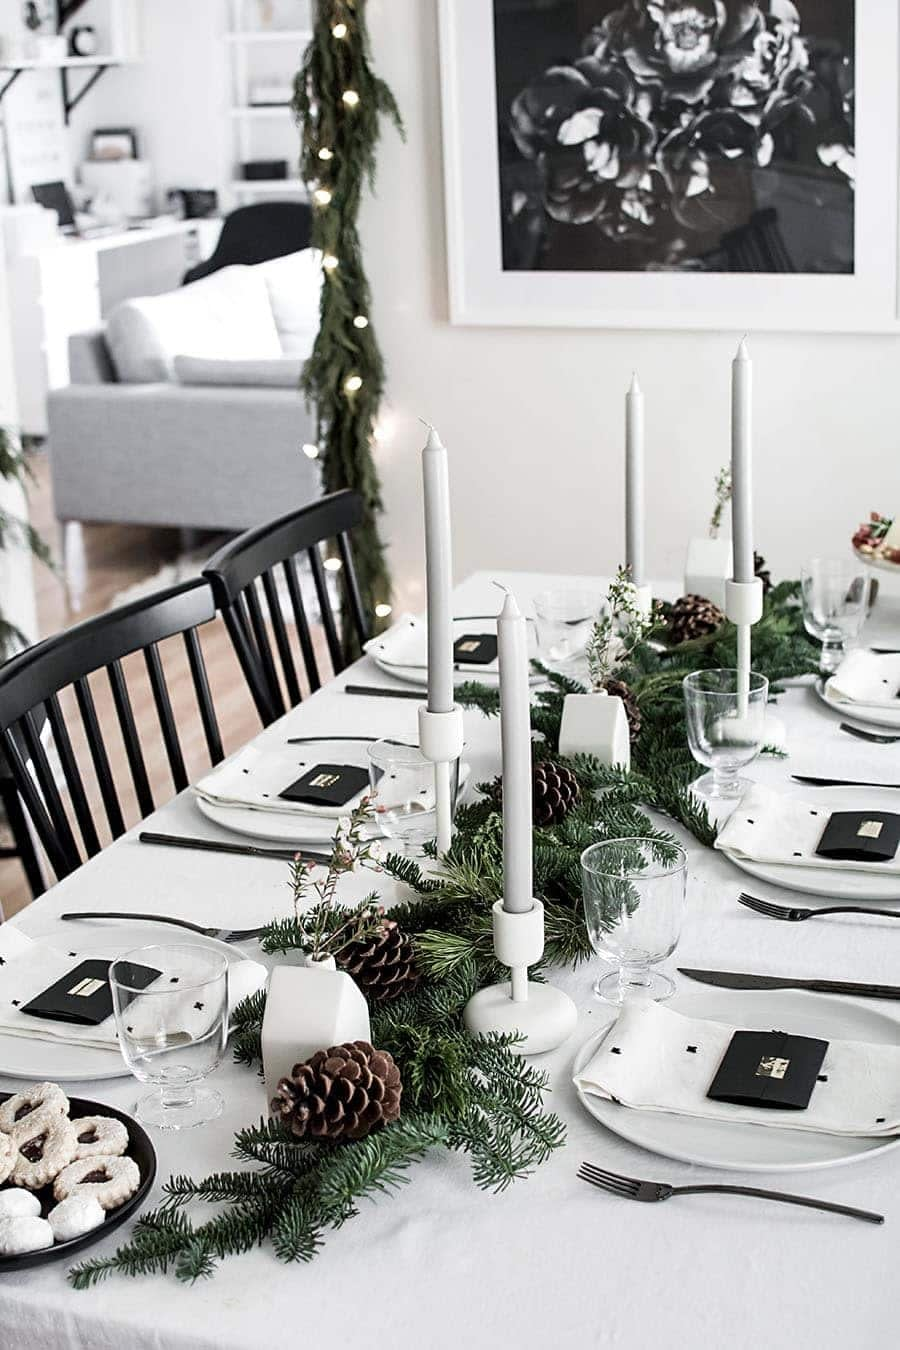 Black and white christmas table decorations using candles and green garland